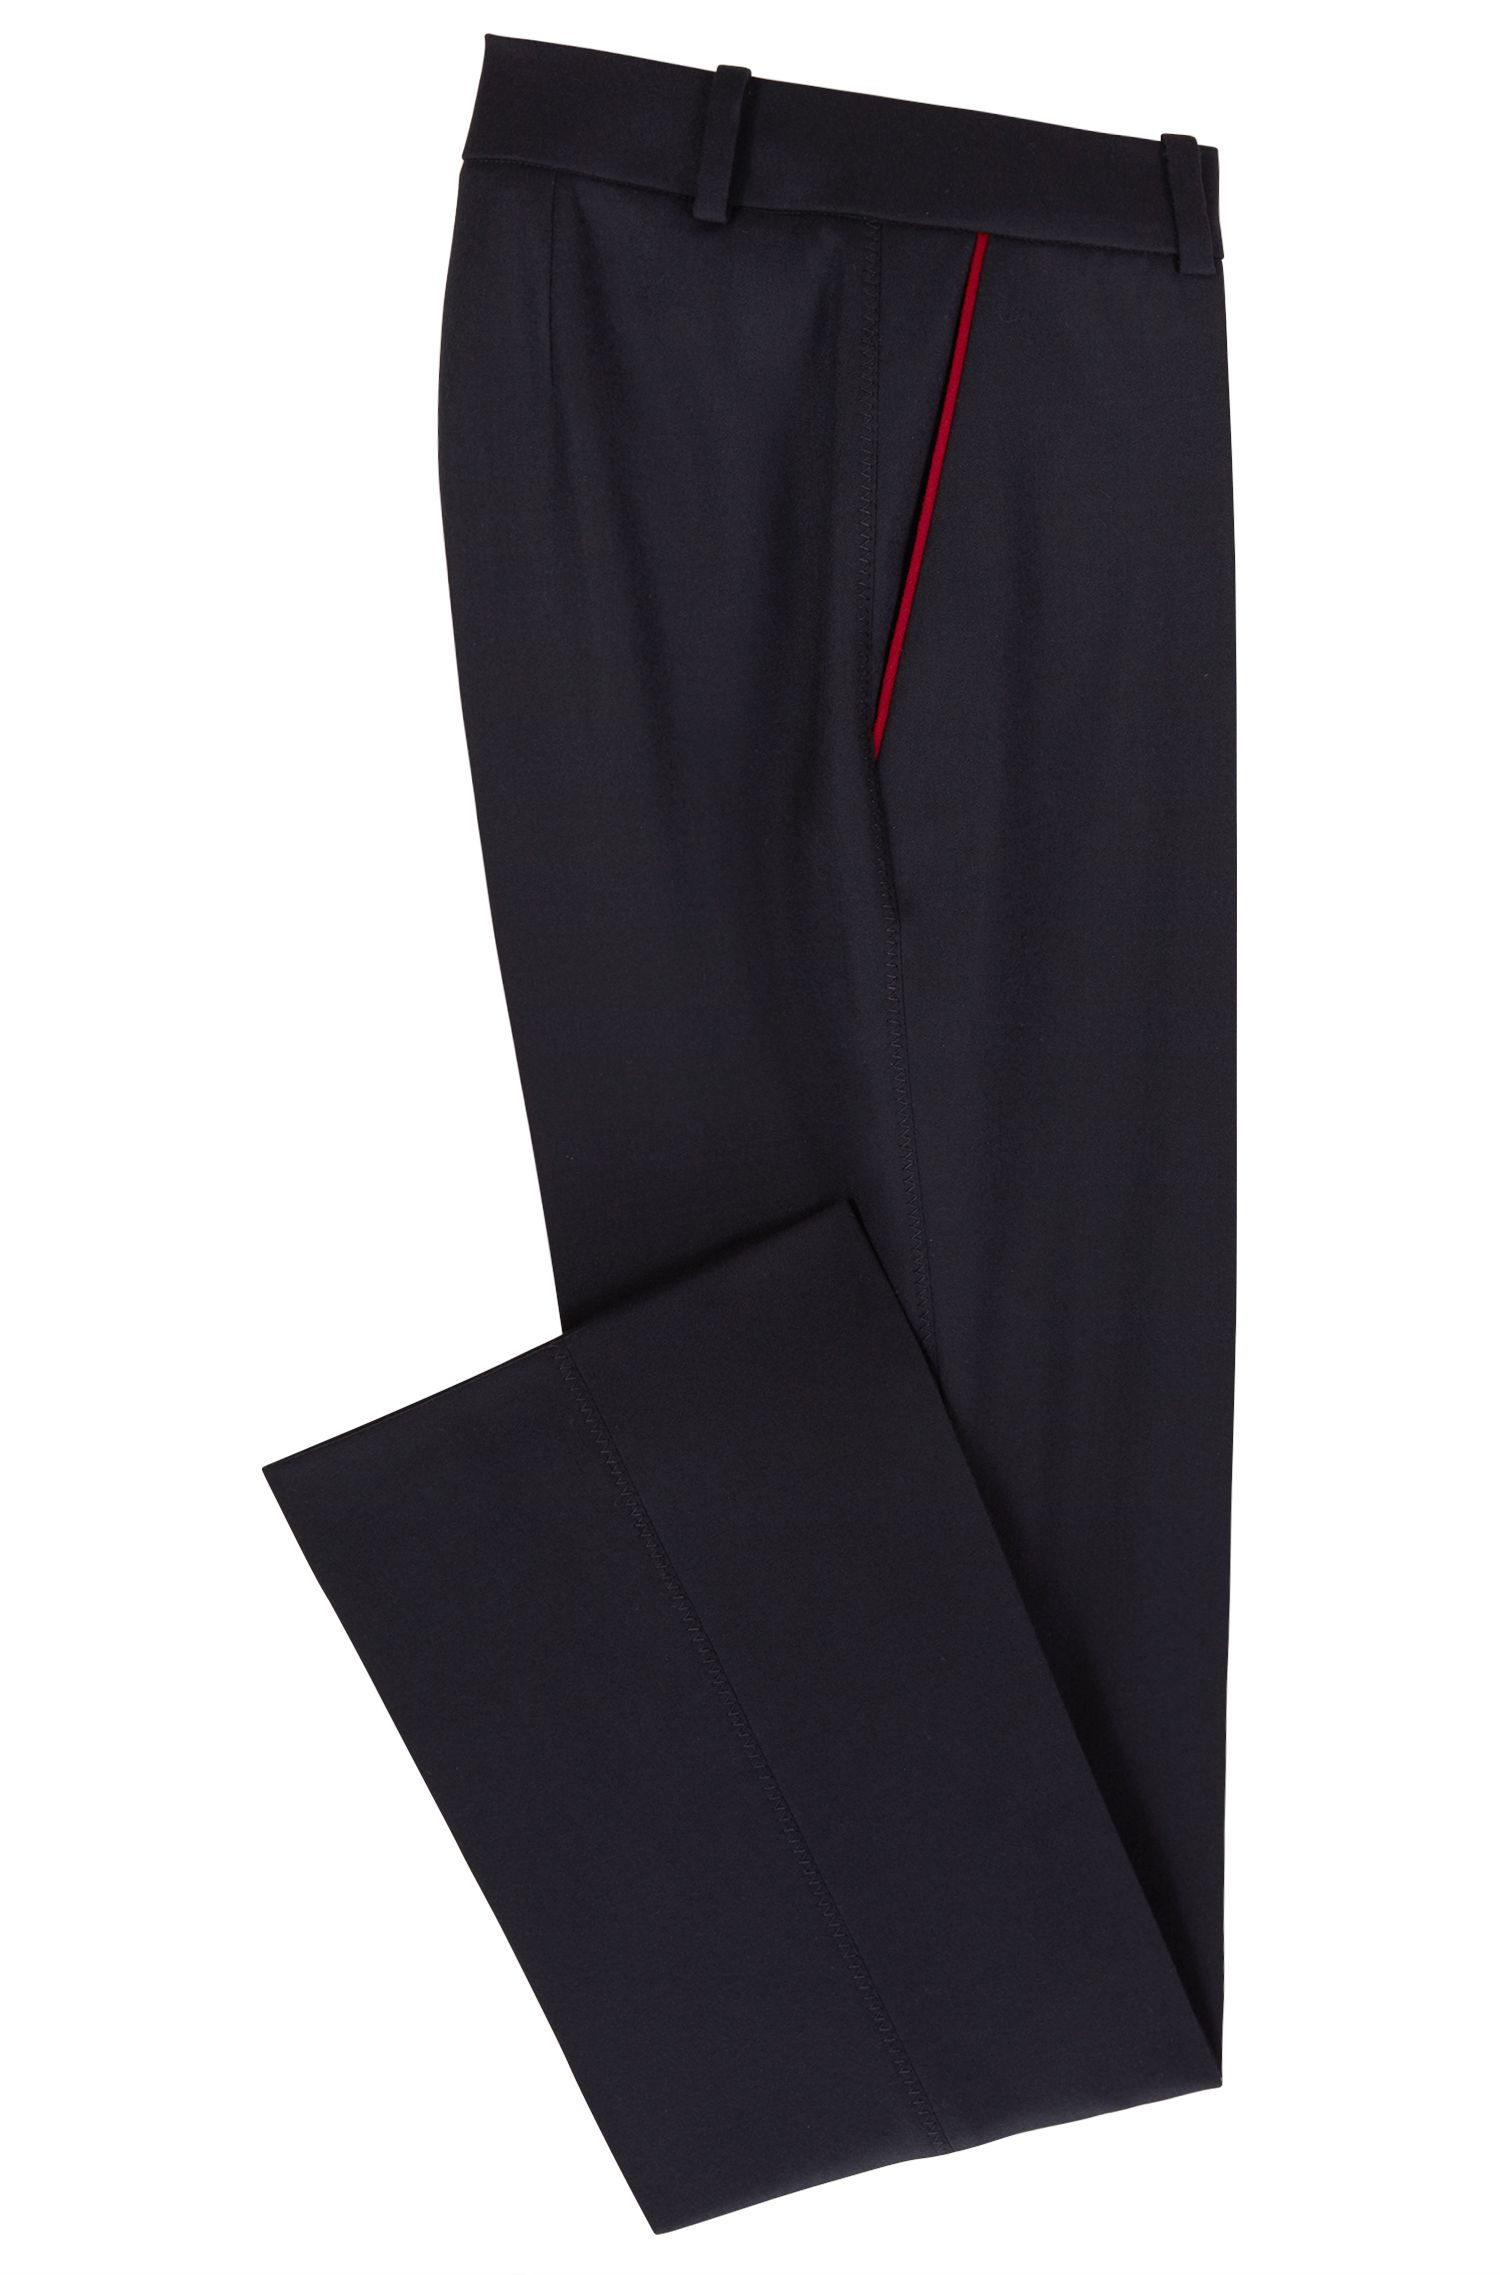 Pantaloni Made in Germany alla caviglia con gamba svasata, Blu scuro